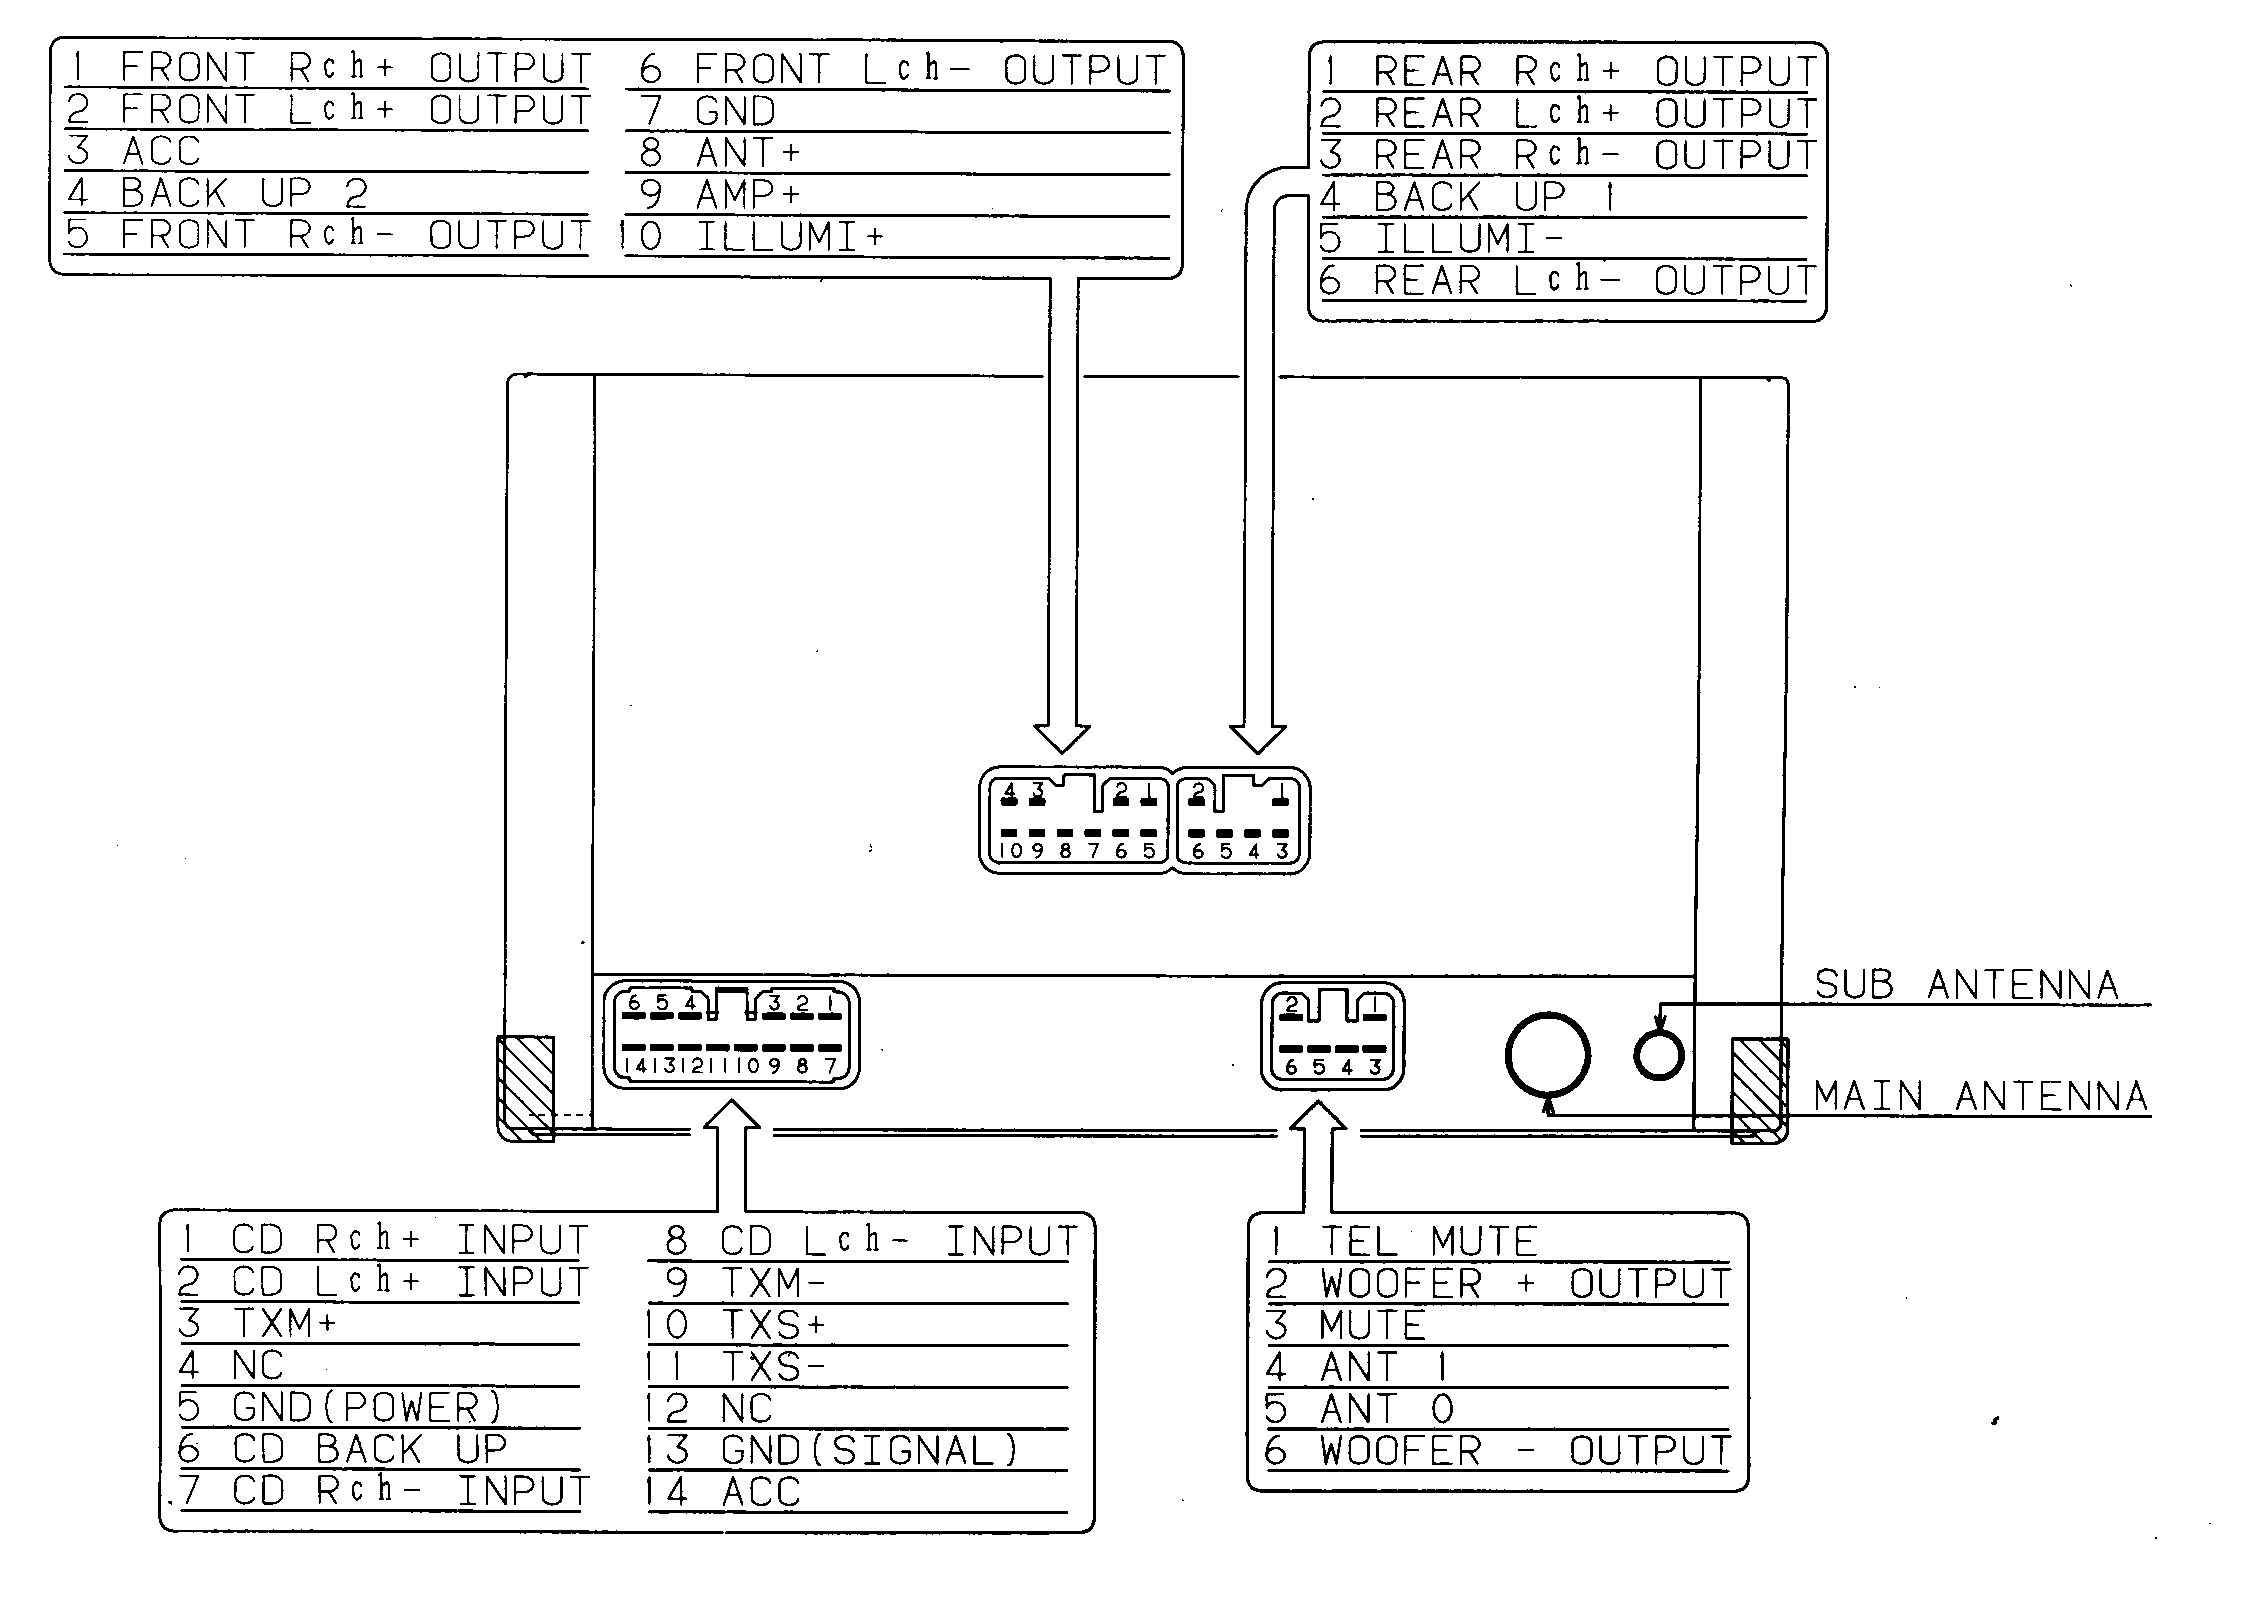 WireHarnessLexus121001 car audio wire diagram codes lexus factory car stereo repair 1984 buick lesabre radio wiring diagram at alyssarenee.co